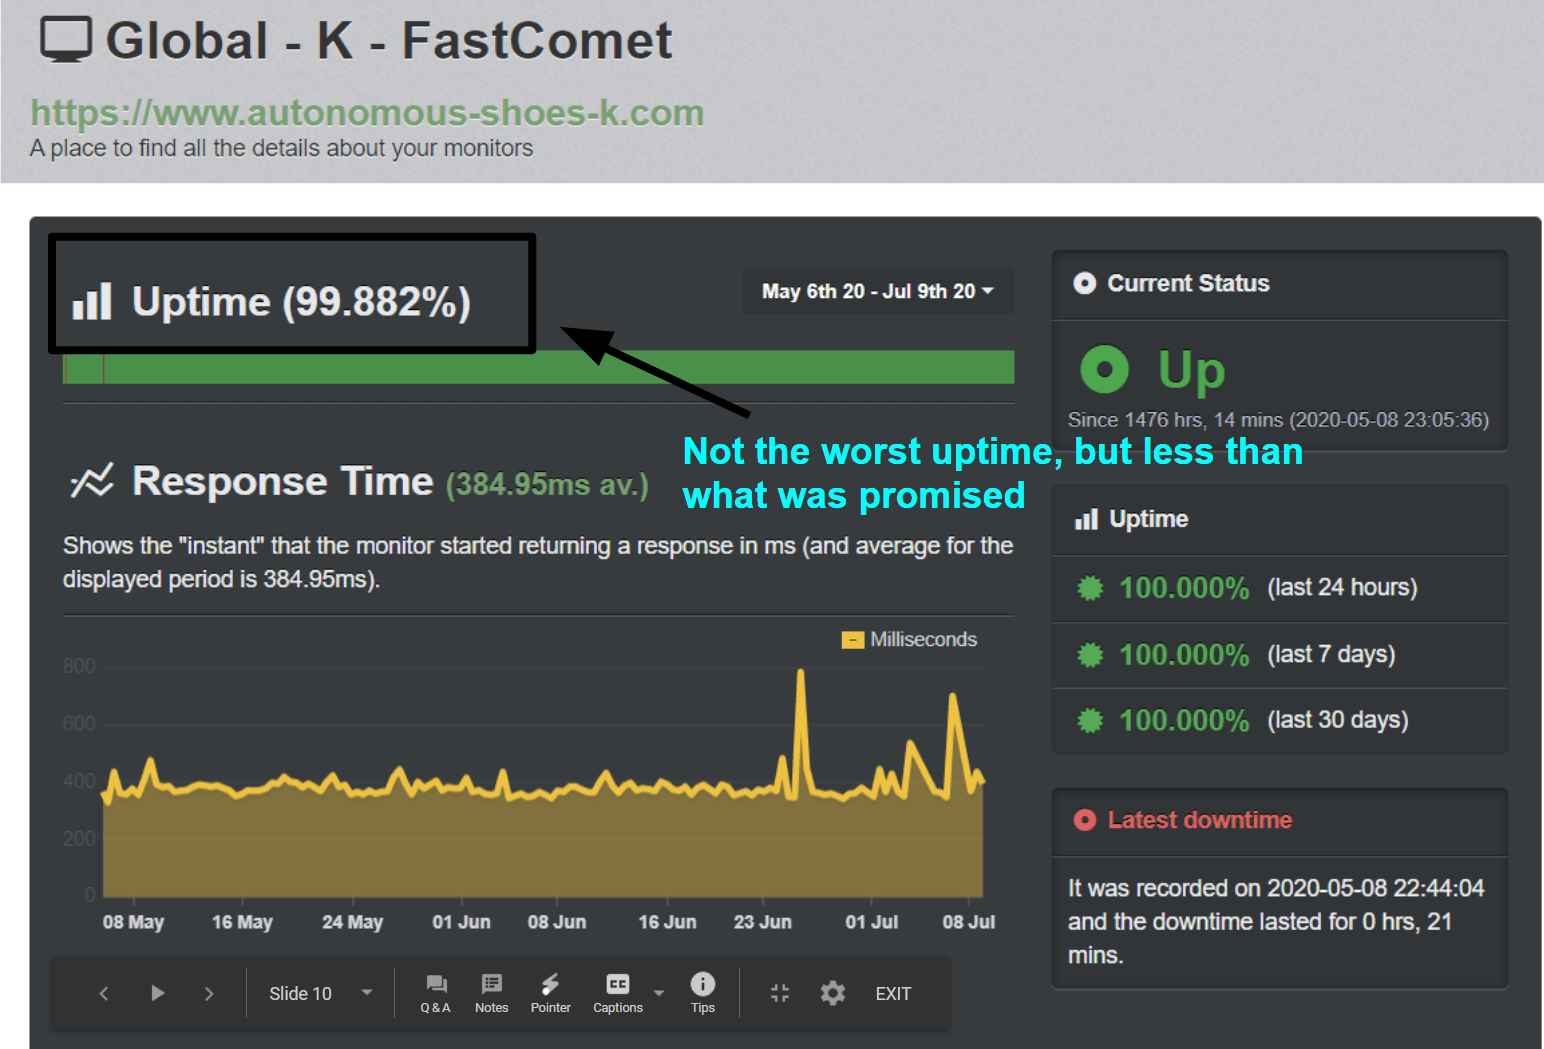 FastComet performance - uptime tracking